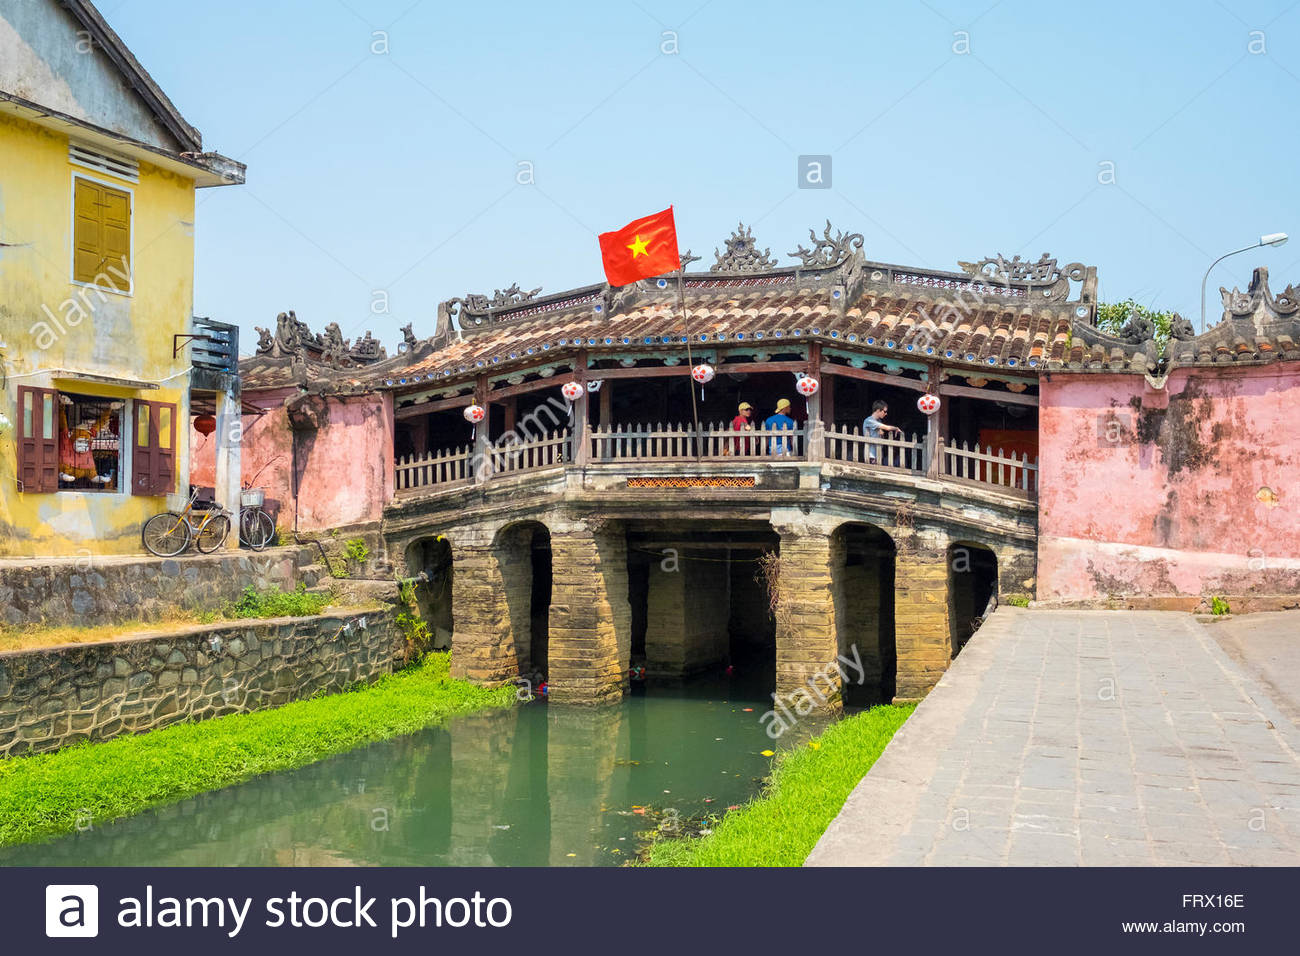 The Japanese Covered Bridge in Hoi An ancient town, Hoi An, Quang Nam Province, Vietnam - Stock Image